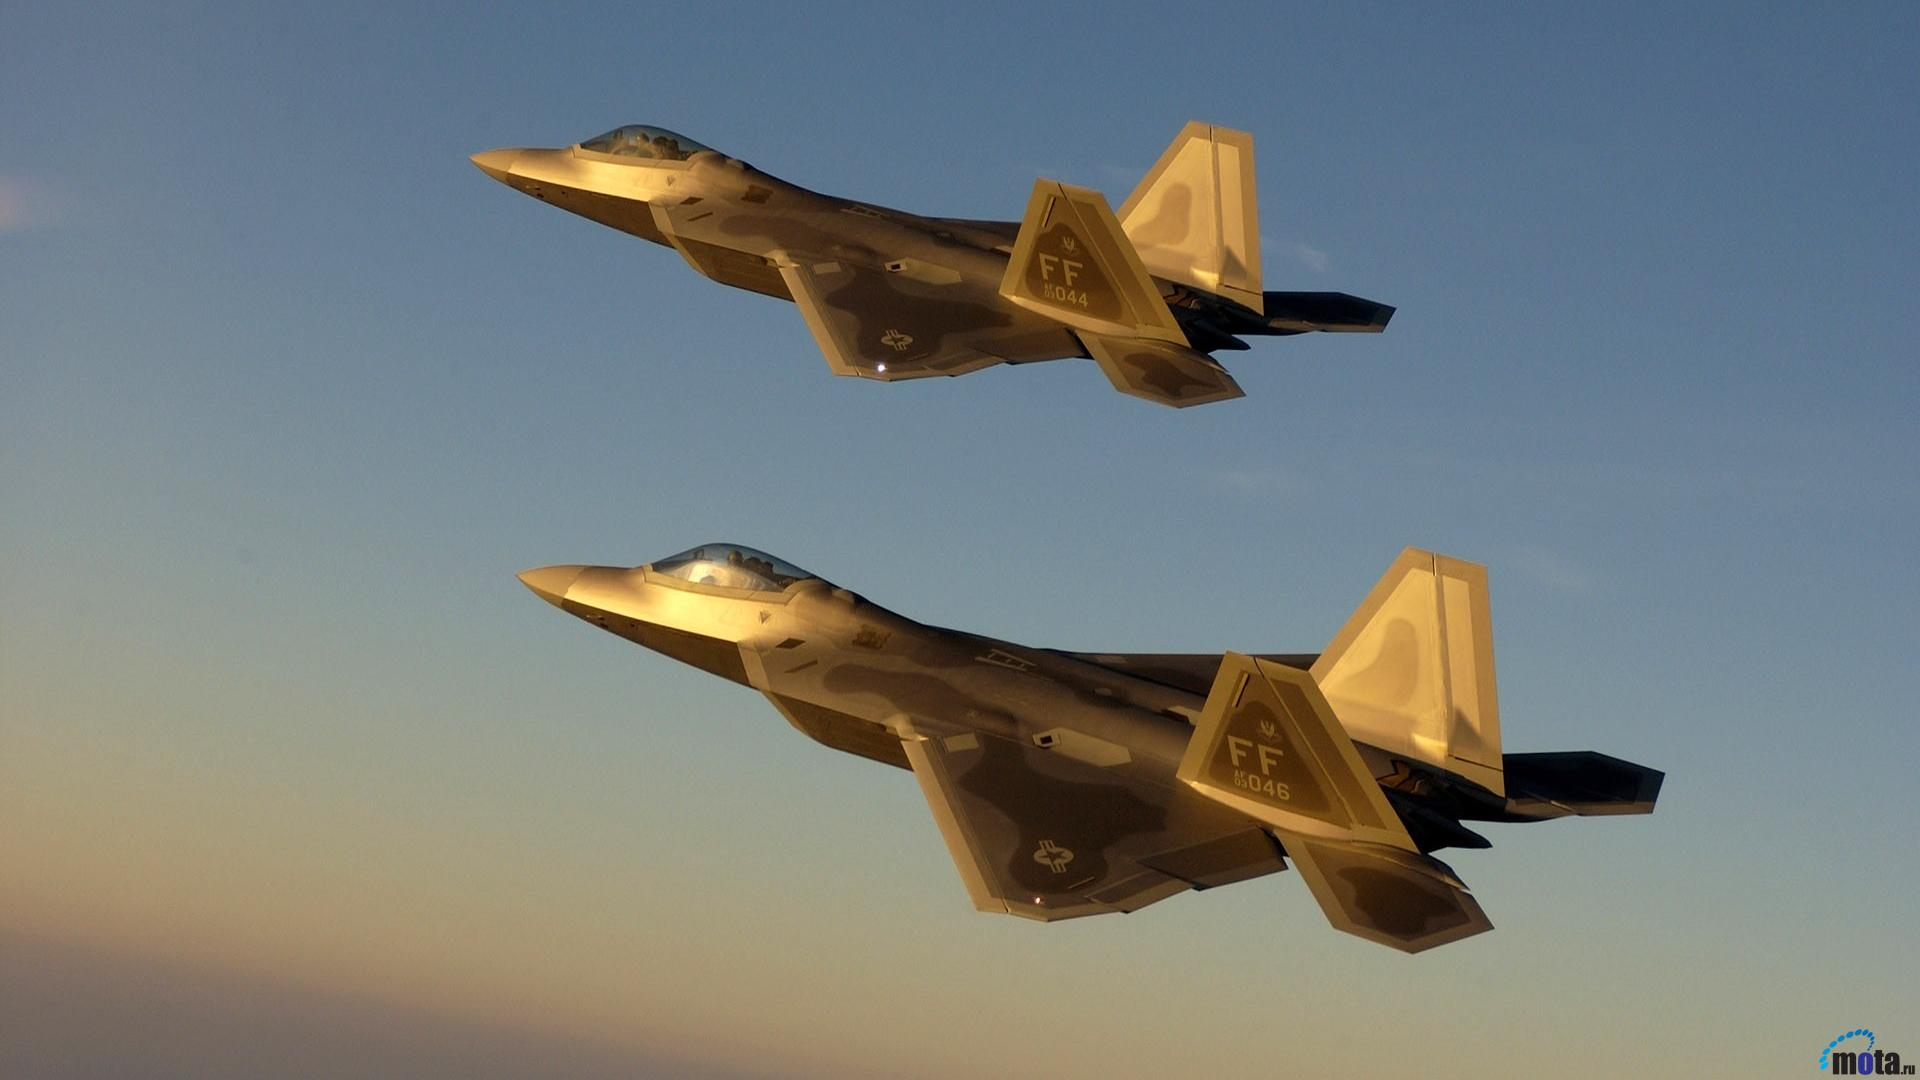 Download Wallpaper Boeing F 22 Raptor 1920 x 1080 HDTV 1080p 1920x1080